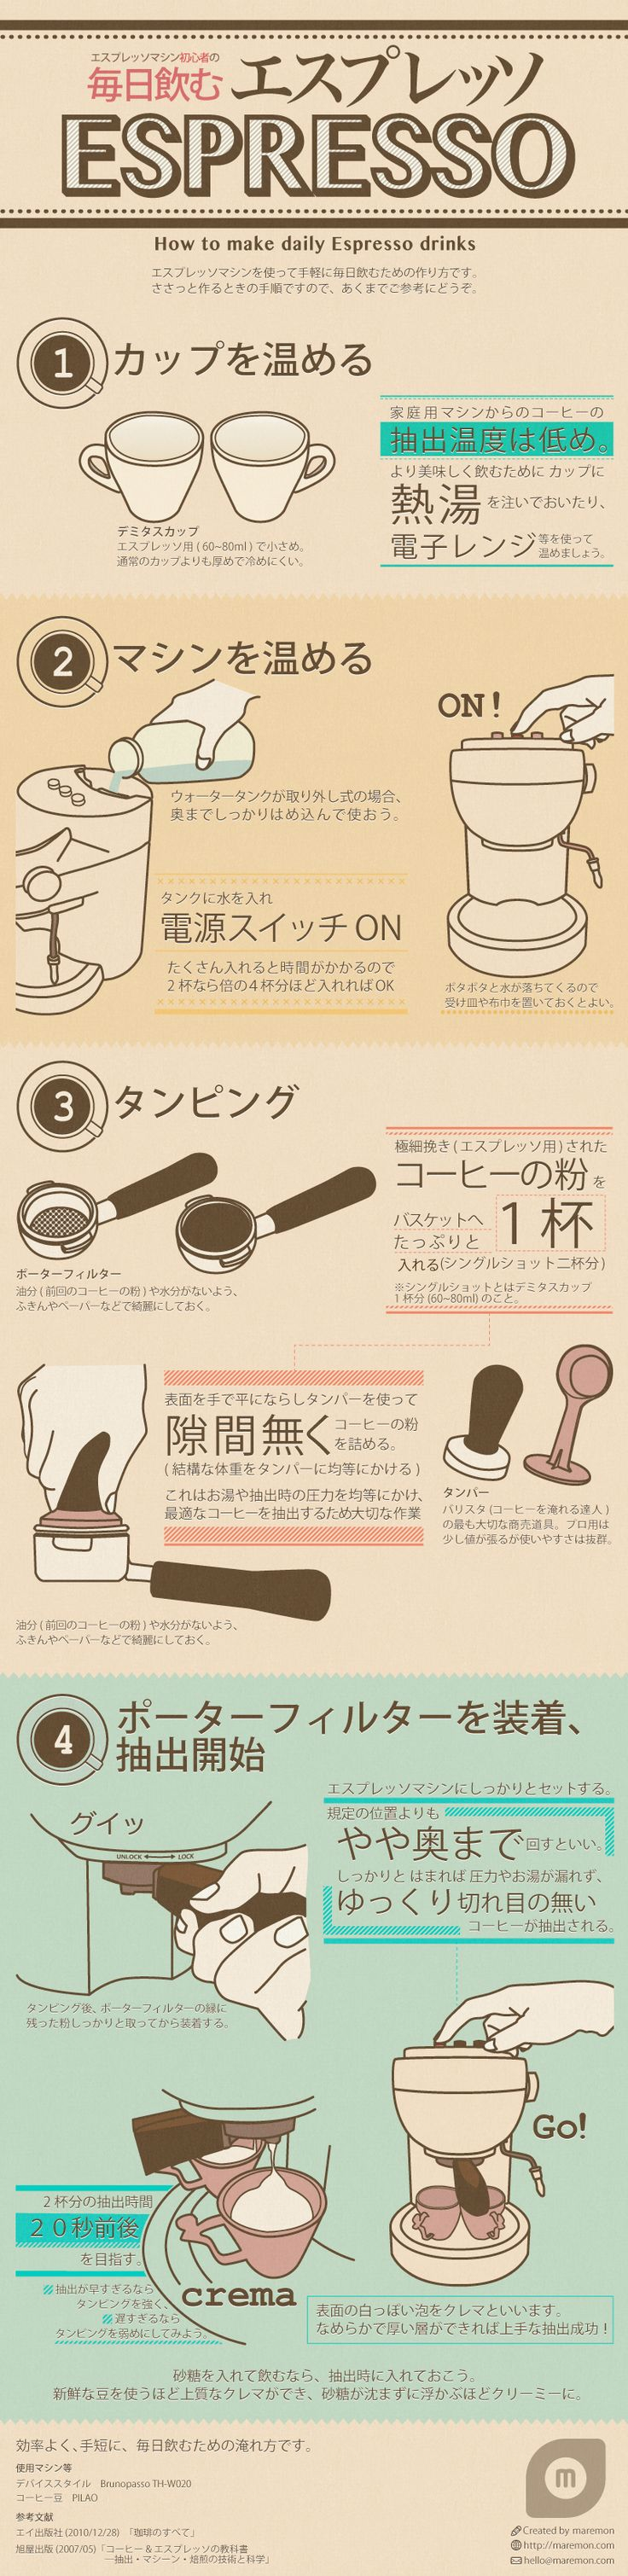 Japanese Infographic - How to make daily espresso drinks Tokyo Coffee